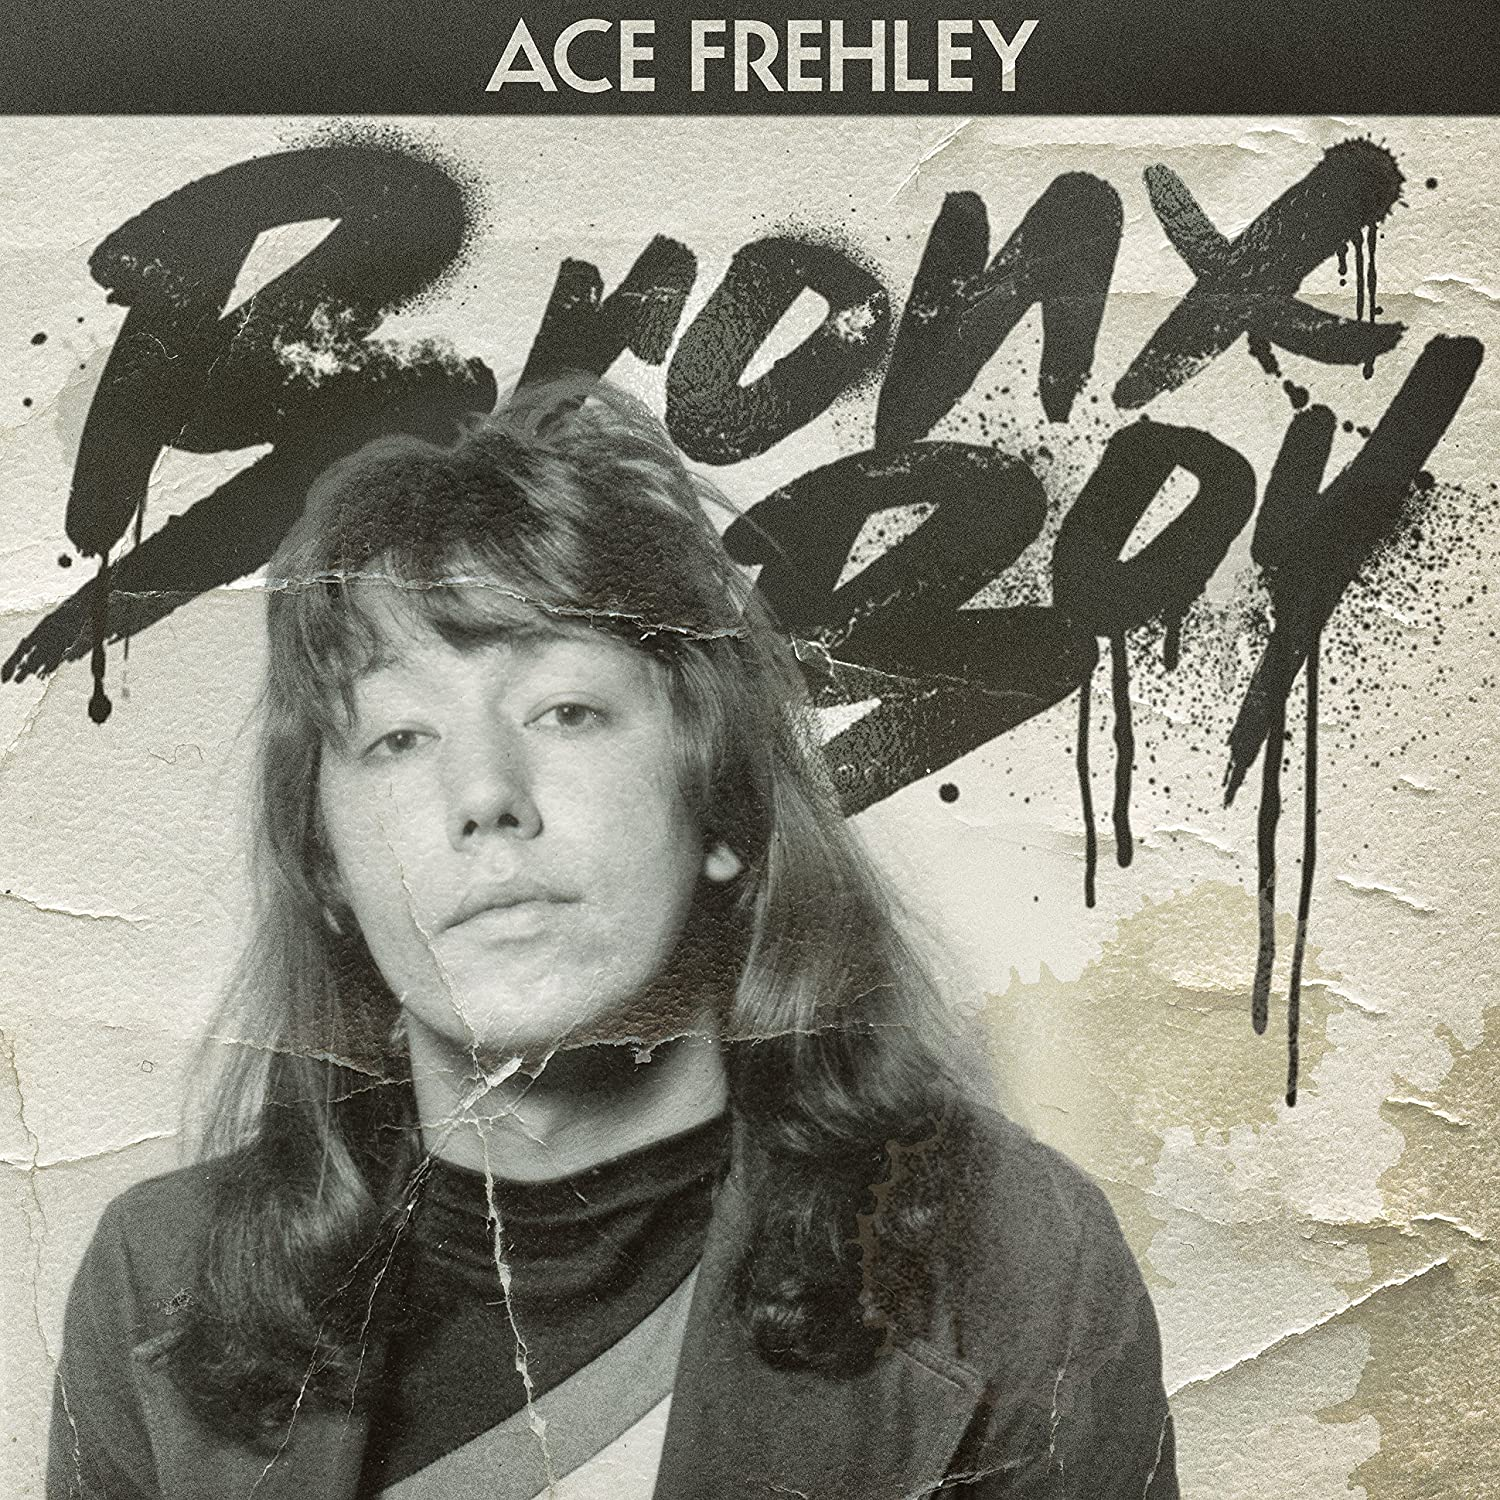 Vinilo : Ace Frehley - Bronx Boy (12 Inch Single)